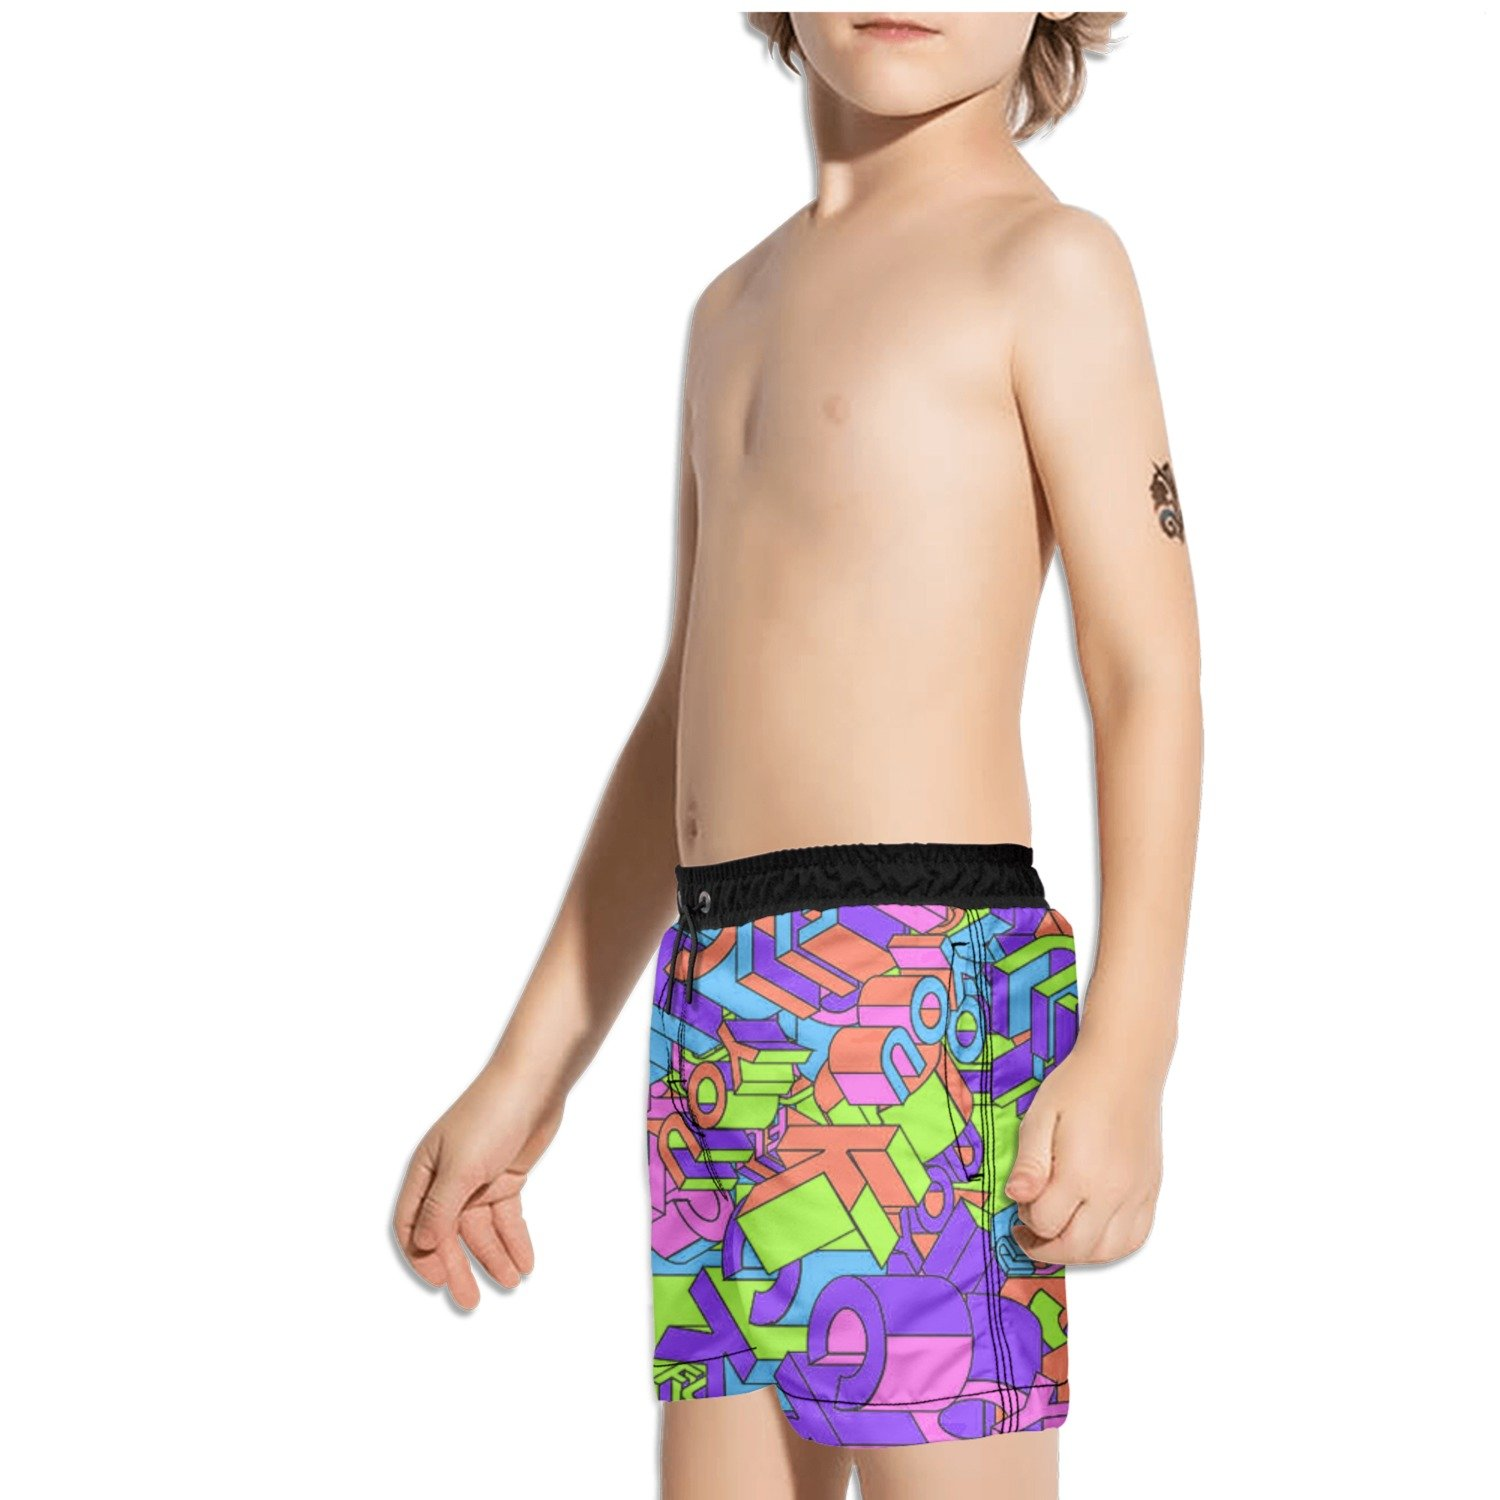 Ouxioaz Boys Swim Trunk Colorful F ck It Logo Beach Board Shorts